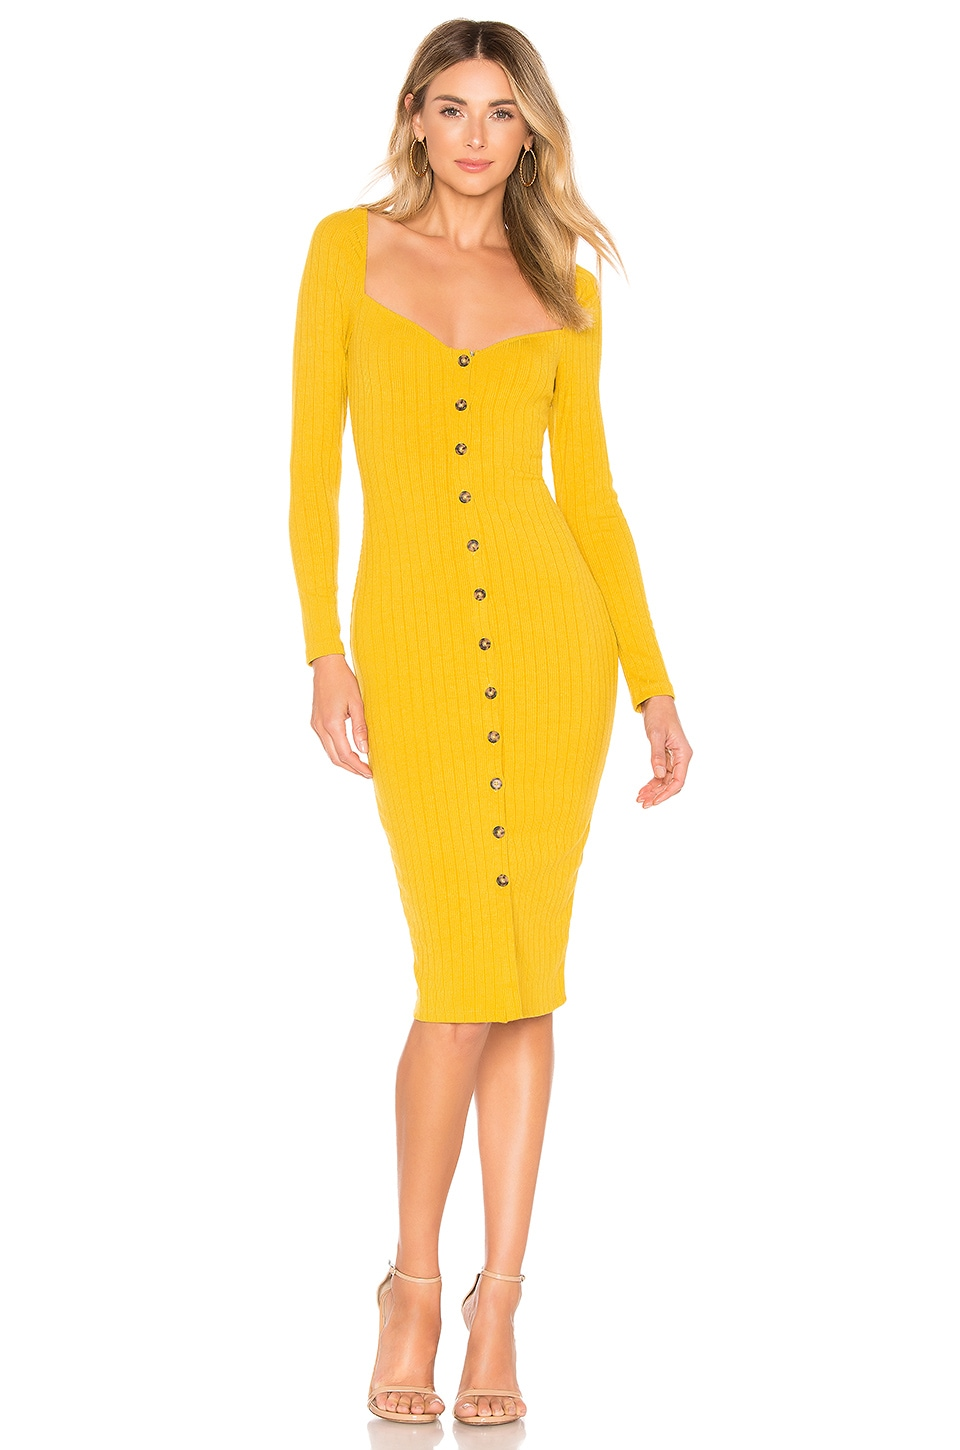 Privacy Please Hunter Midi Dress in Marigold Yellow